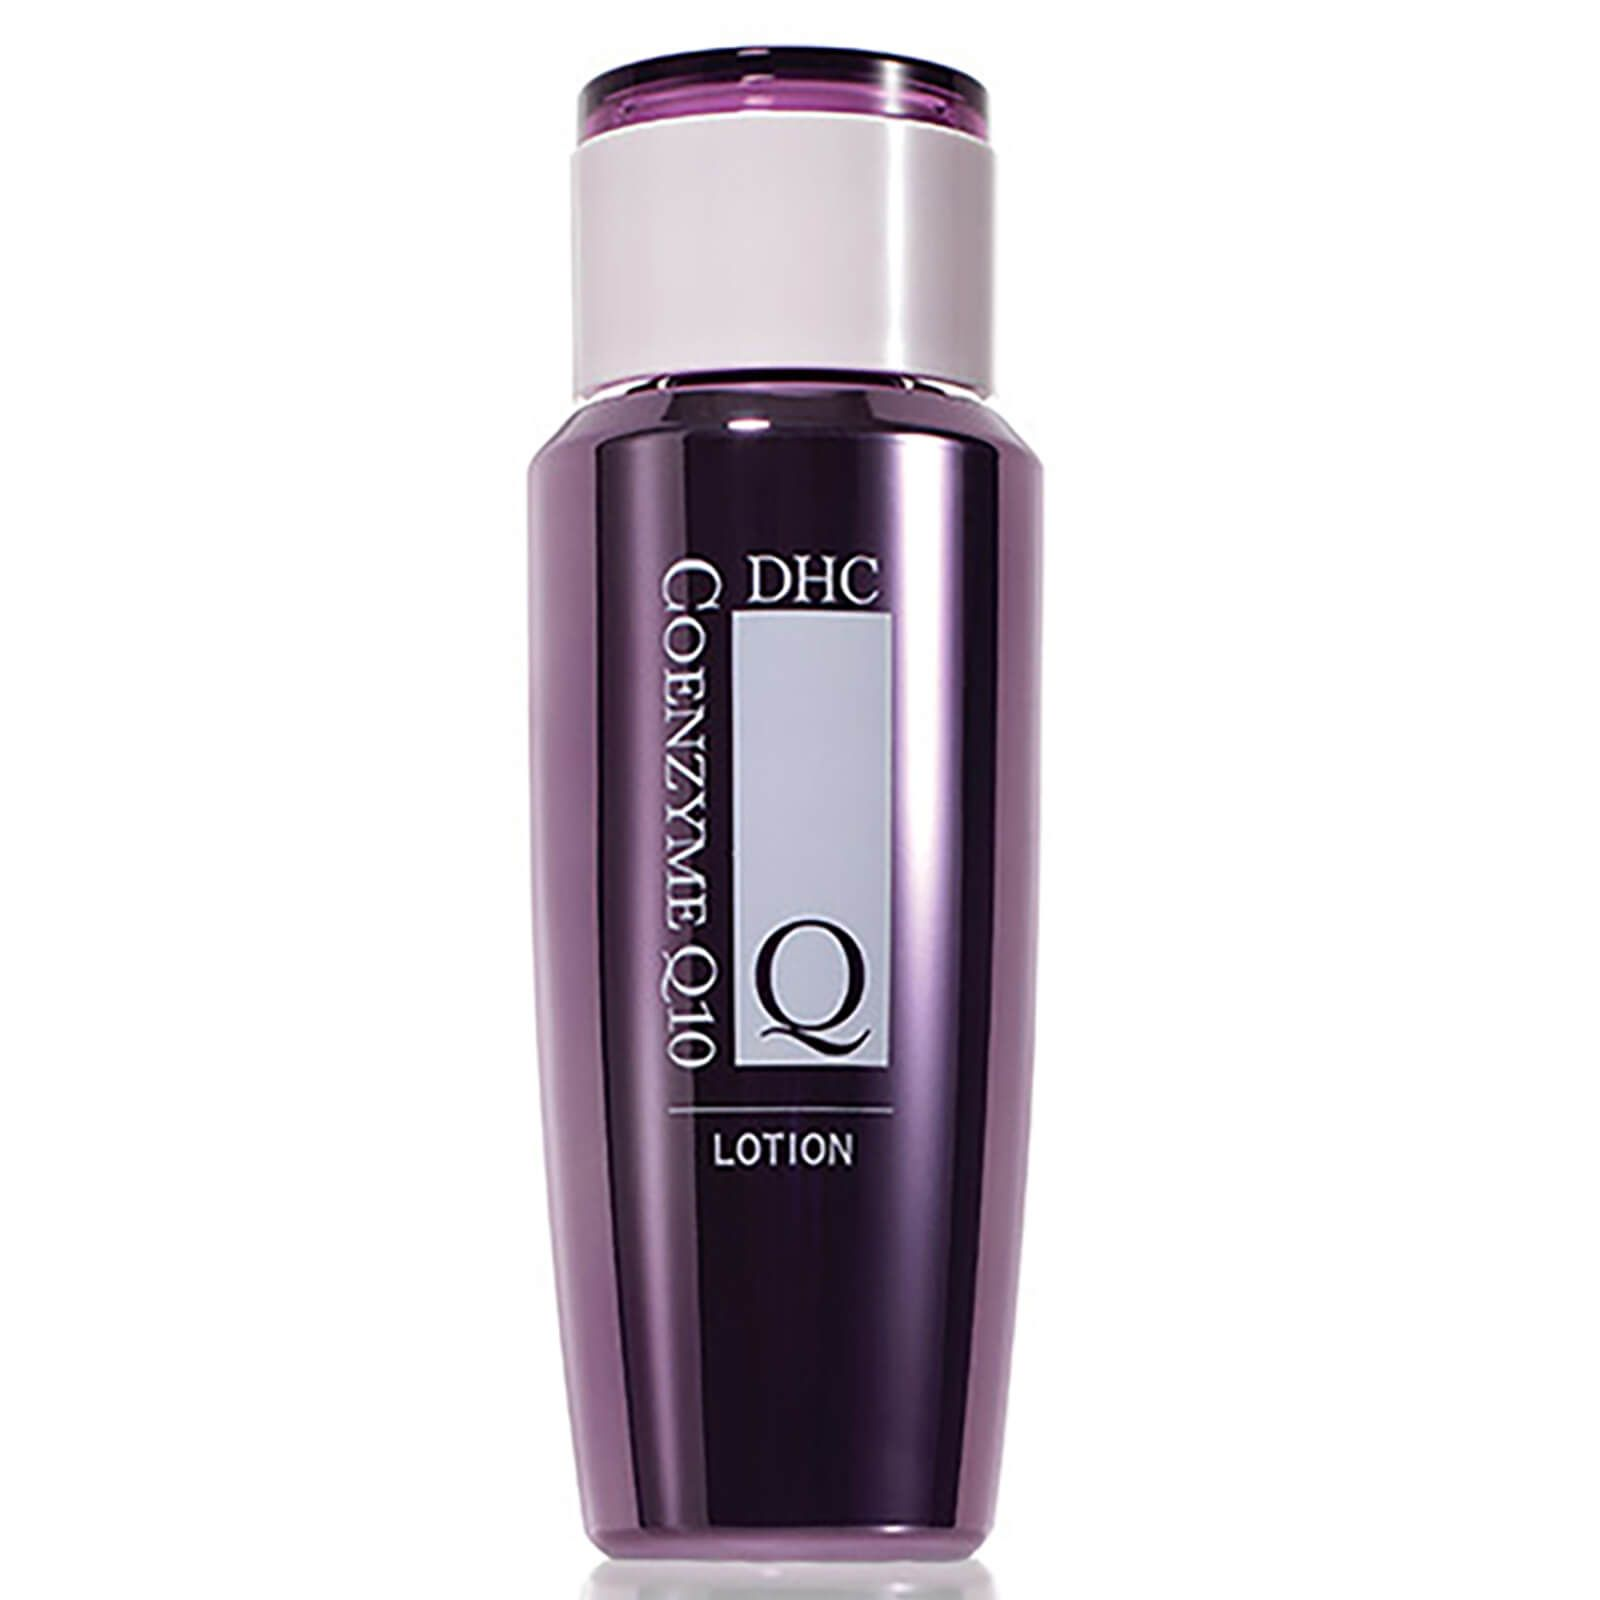 Dhc Coq10 Lotion 160ml In 2020 Dhc Skincare Lotion Japanese Skincare